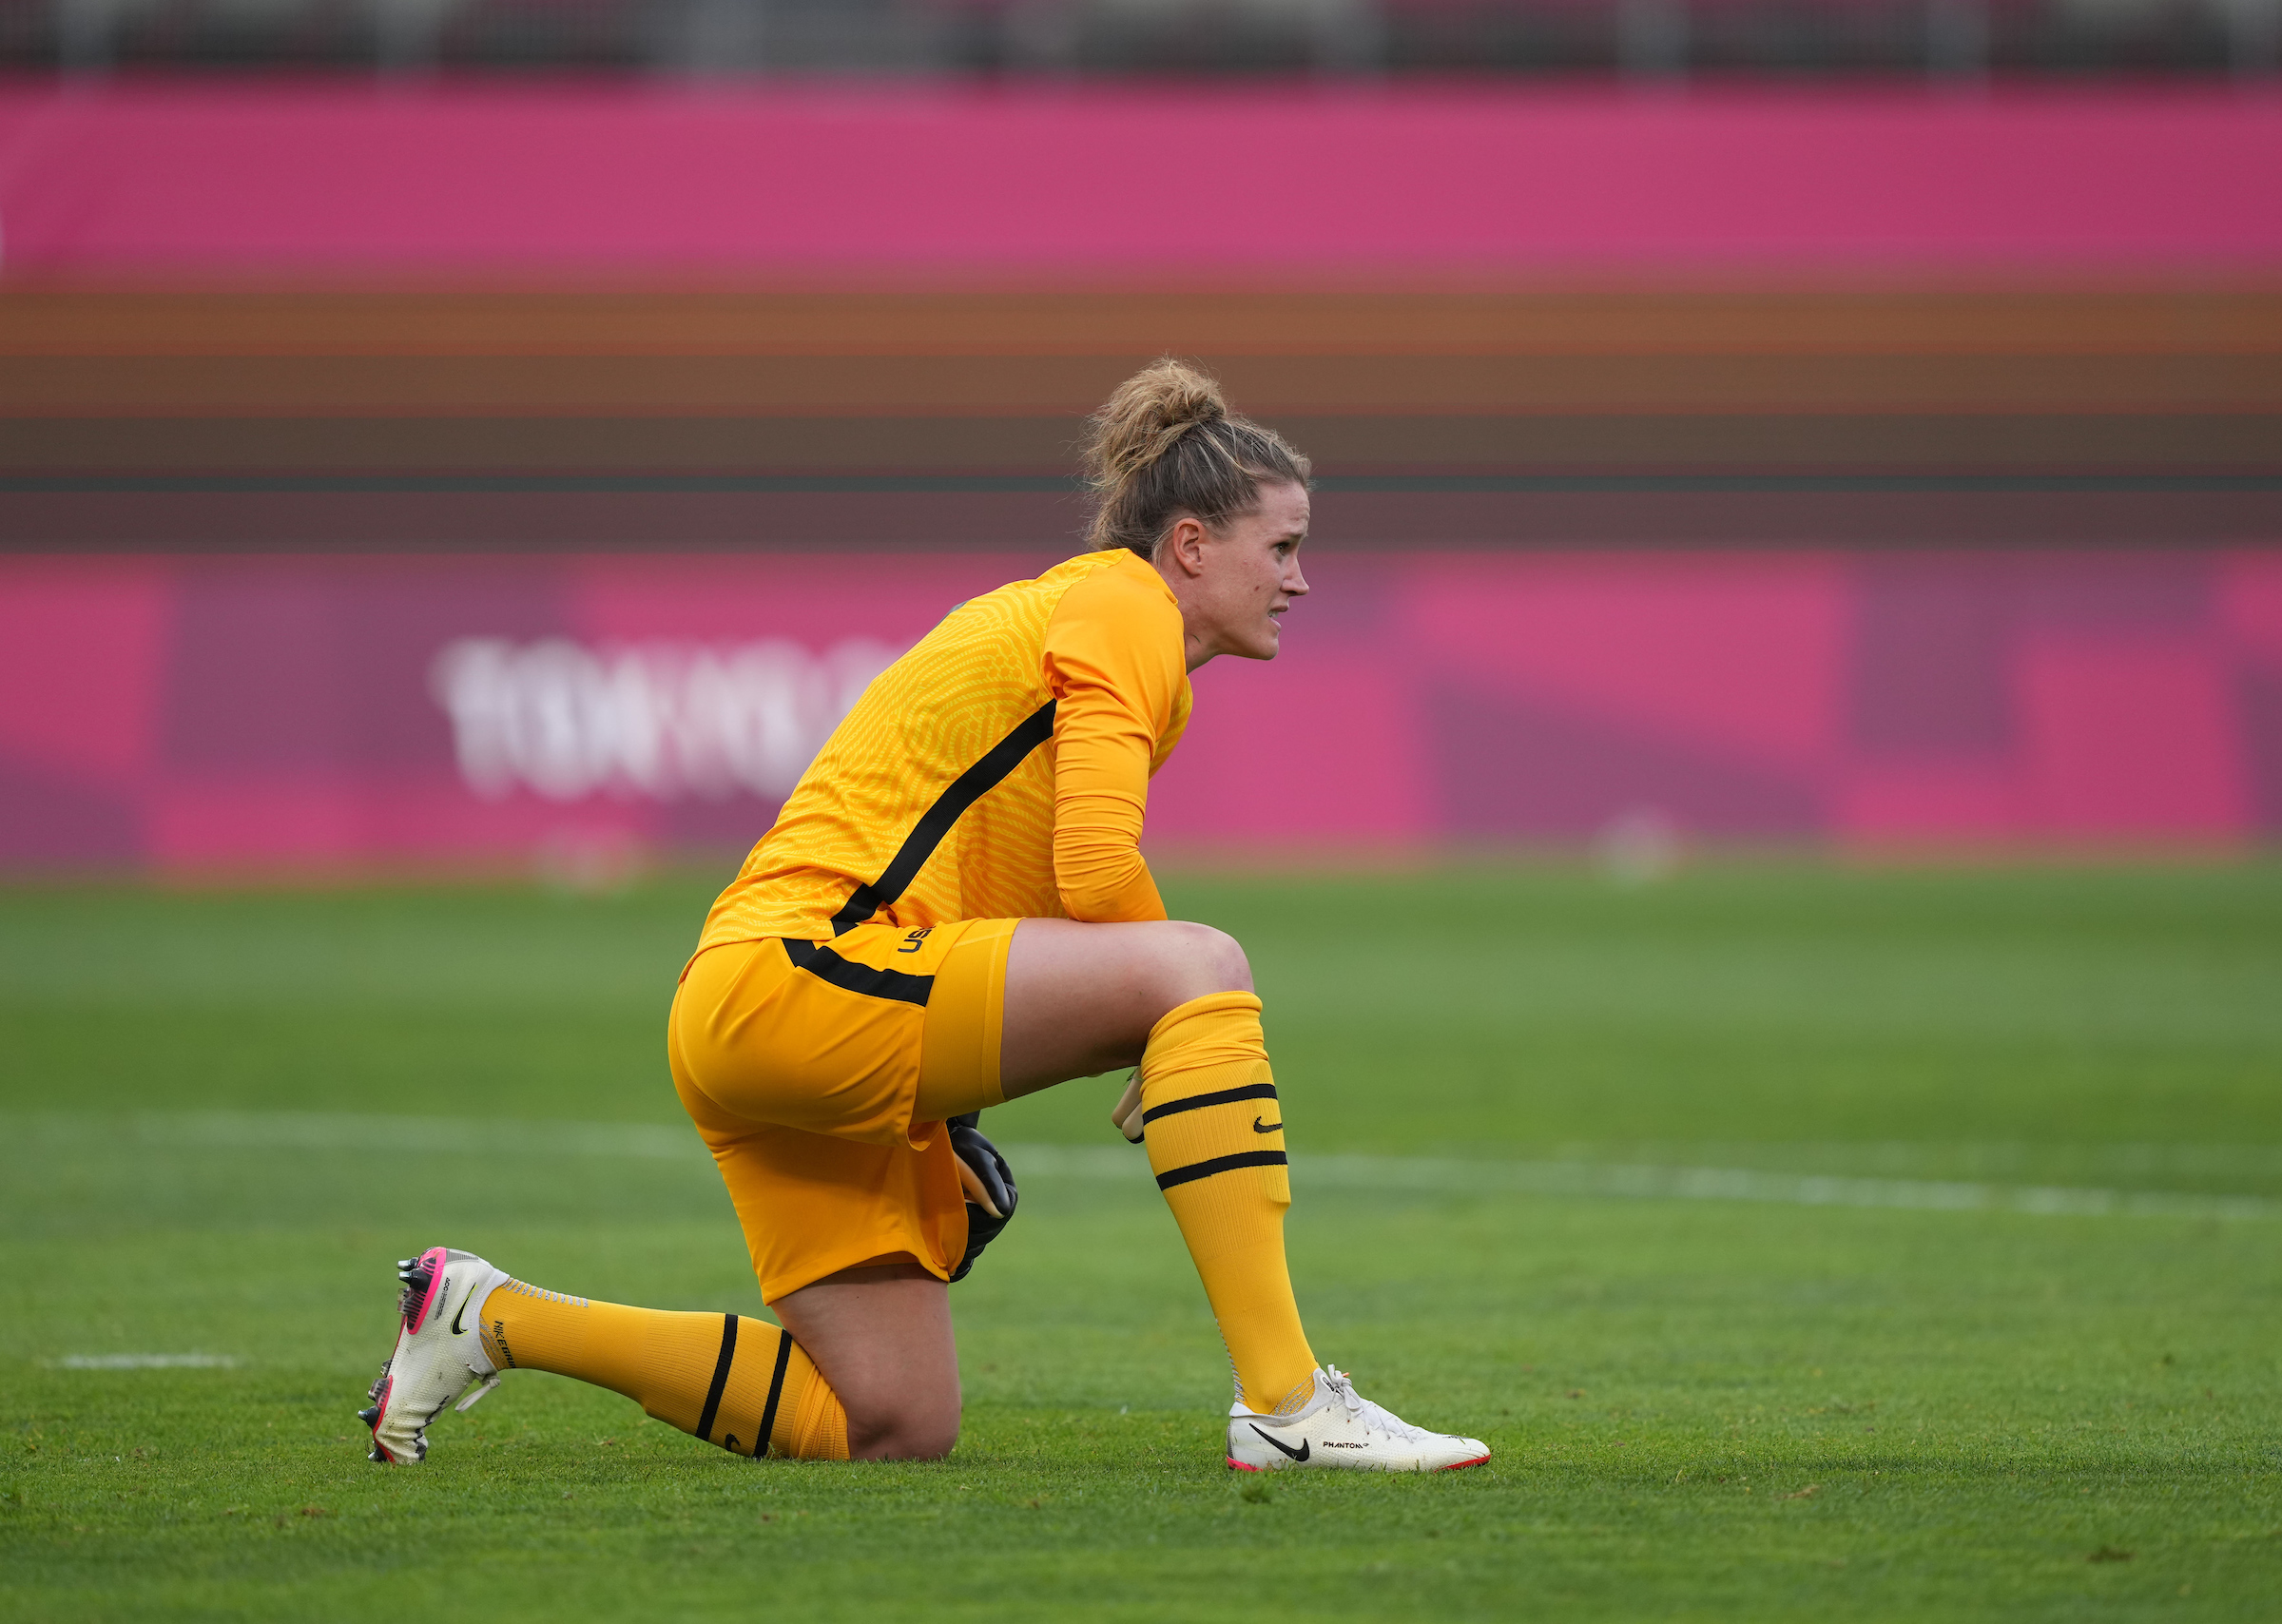 Naeher Ruled Out of Bronze Medal Game